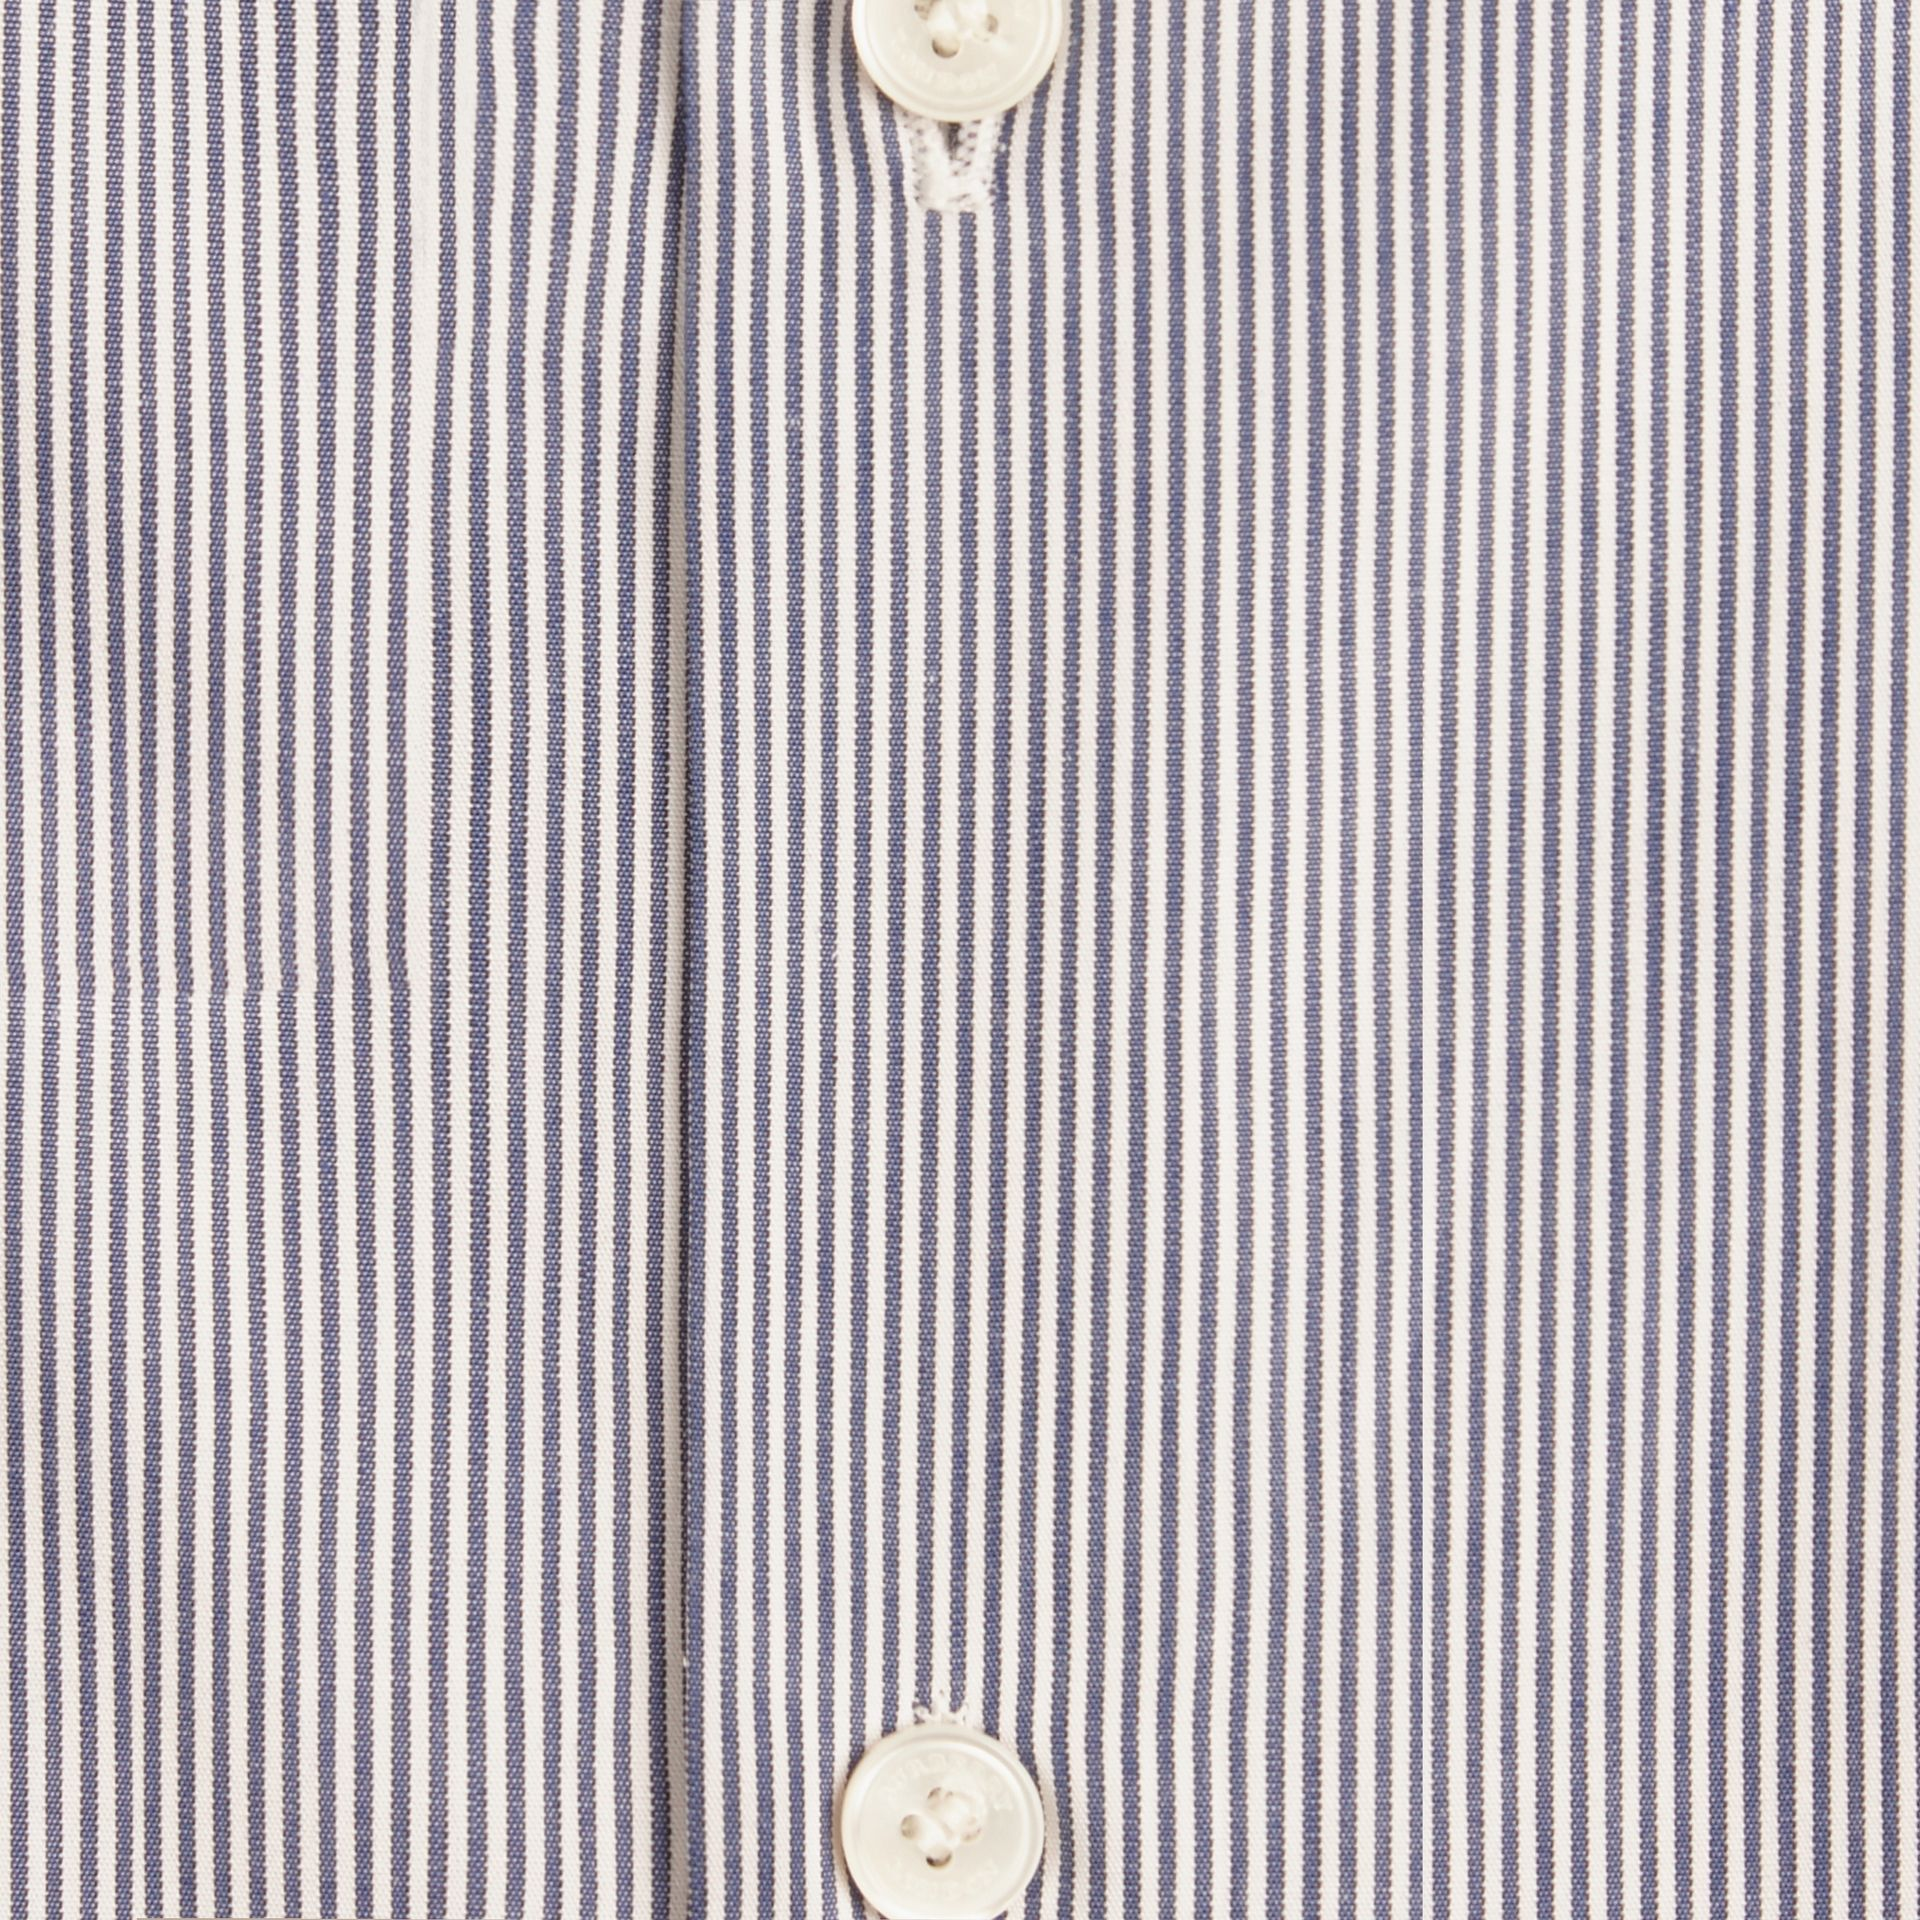 Dark empire blue Slim Fit Striped Cotton Poplin Shirt Dark Empire Blue - gallery image 2